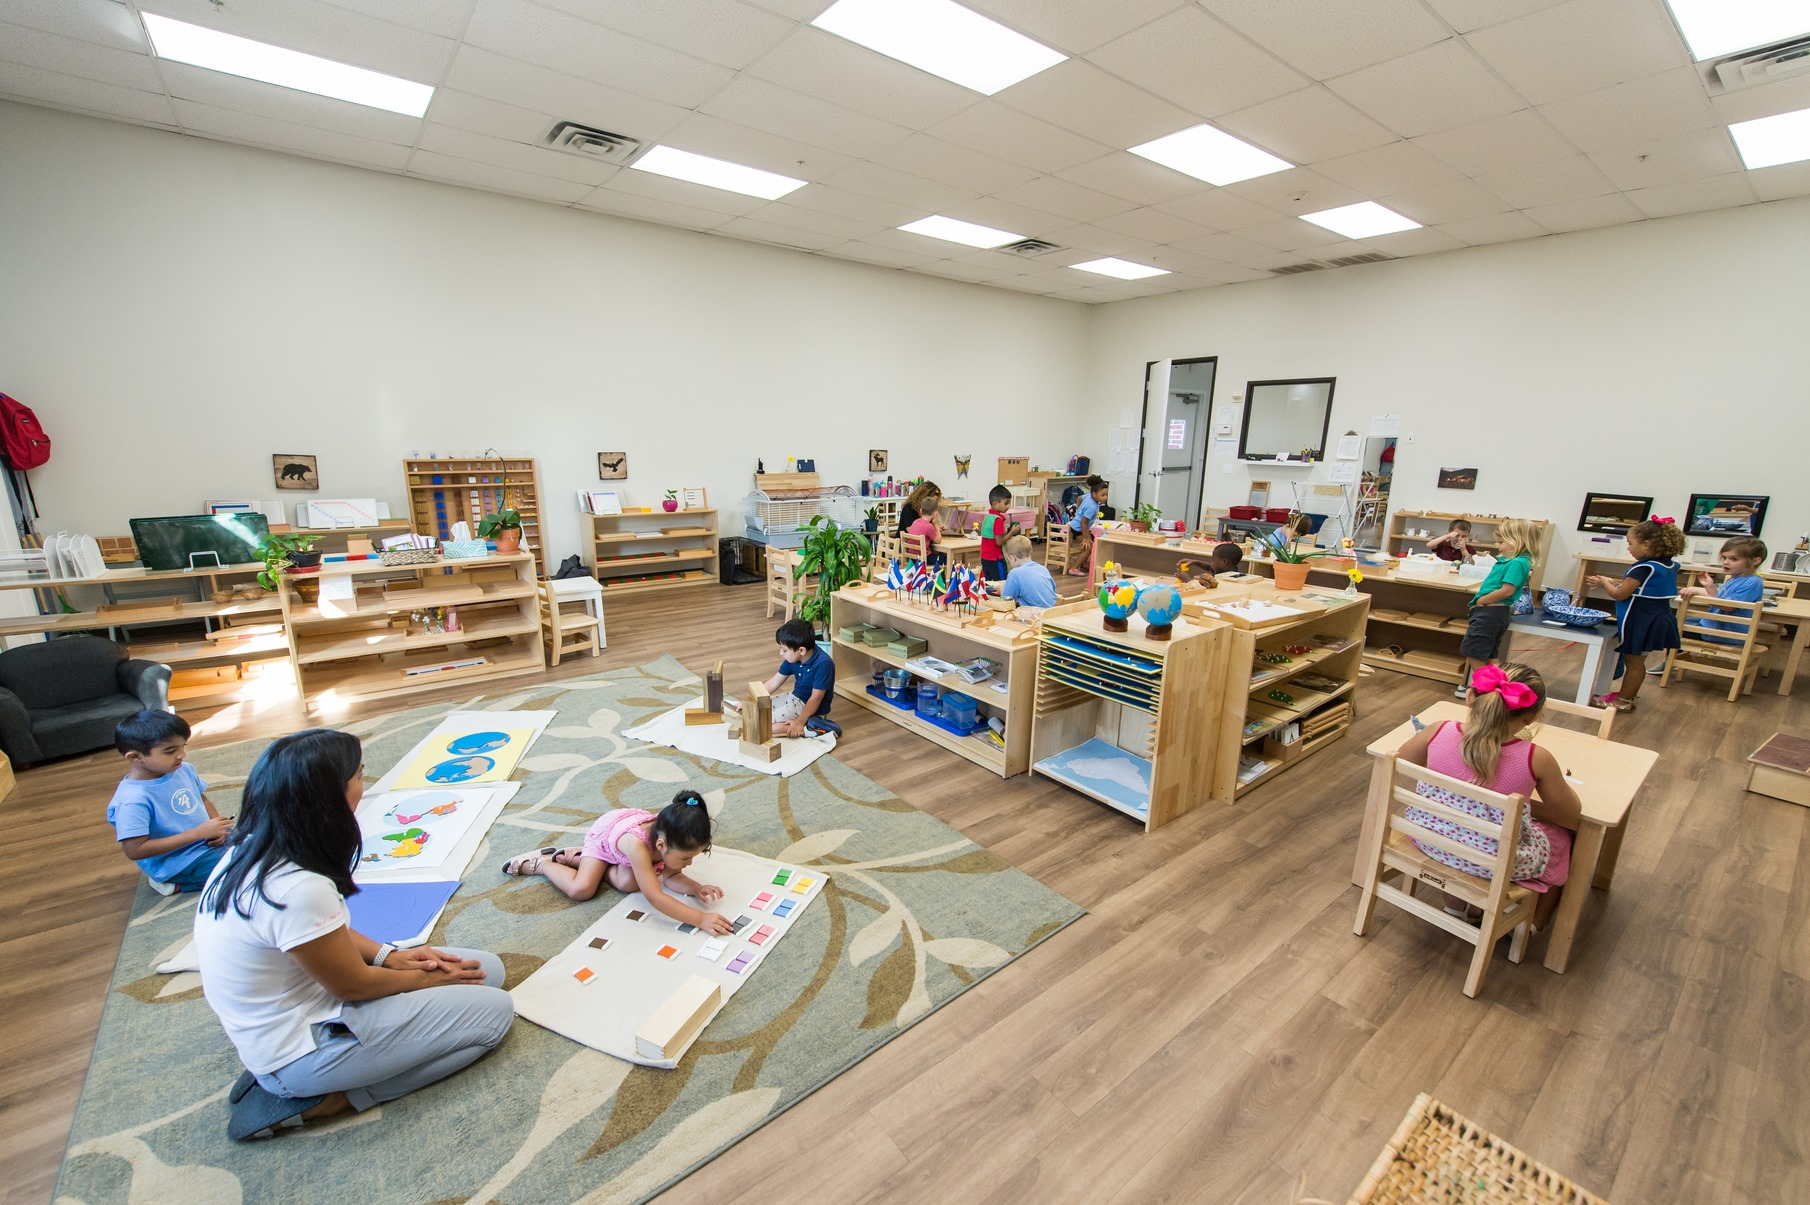 COVID-19, Physical Distancing, and Community: How Montessori Balances Children's Developmental Needs